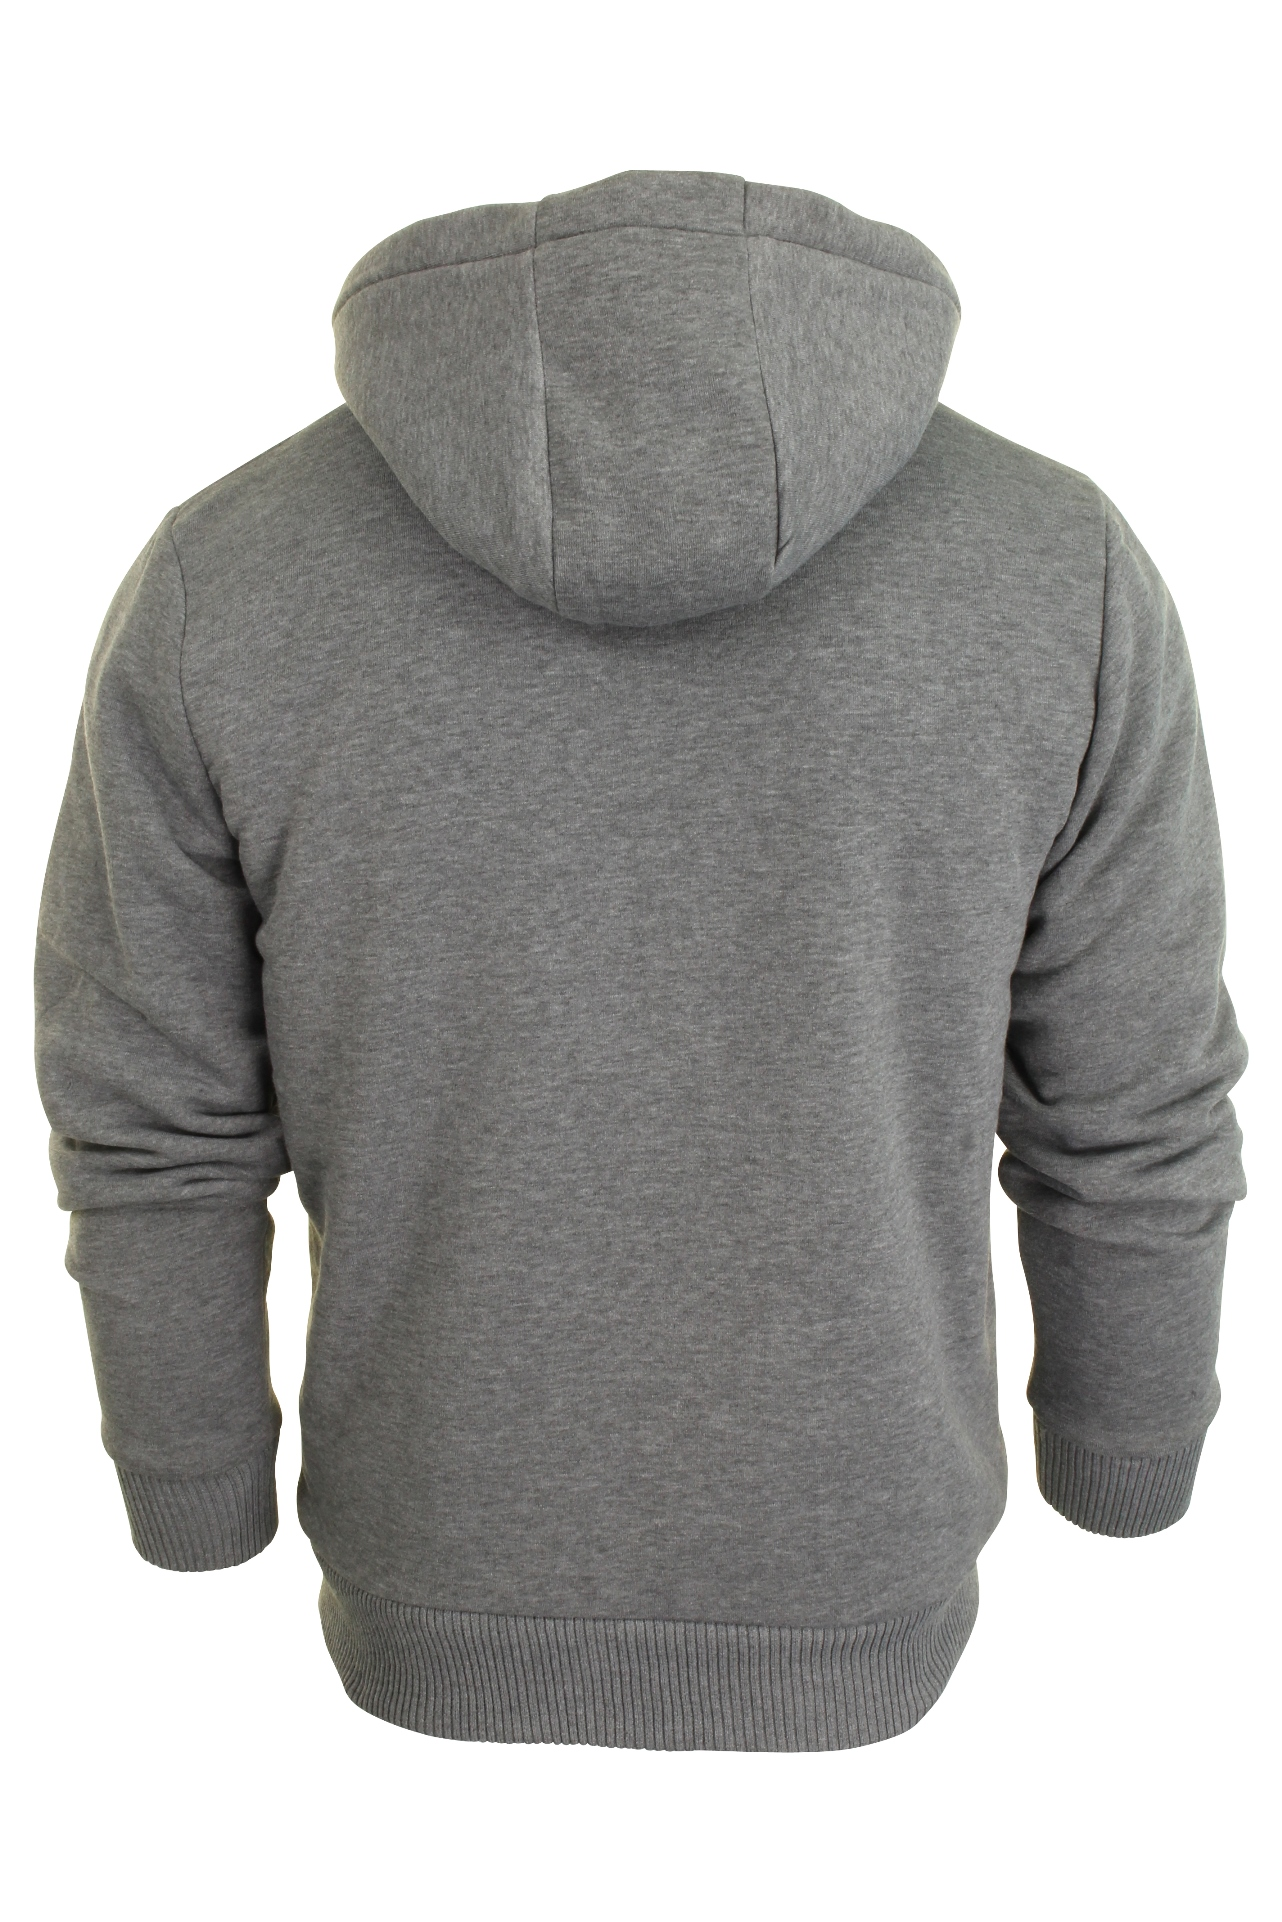 Mens-Dissident-Hoodie-039-Bolo-2-039-Fleece-Lined-Hood-amp-Body thumbnail 8